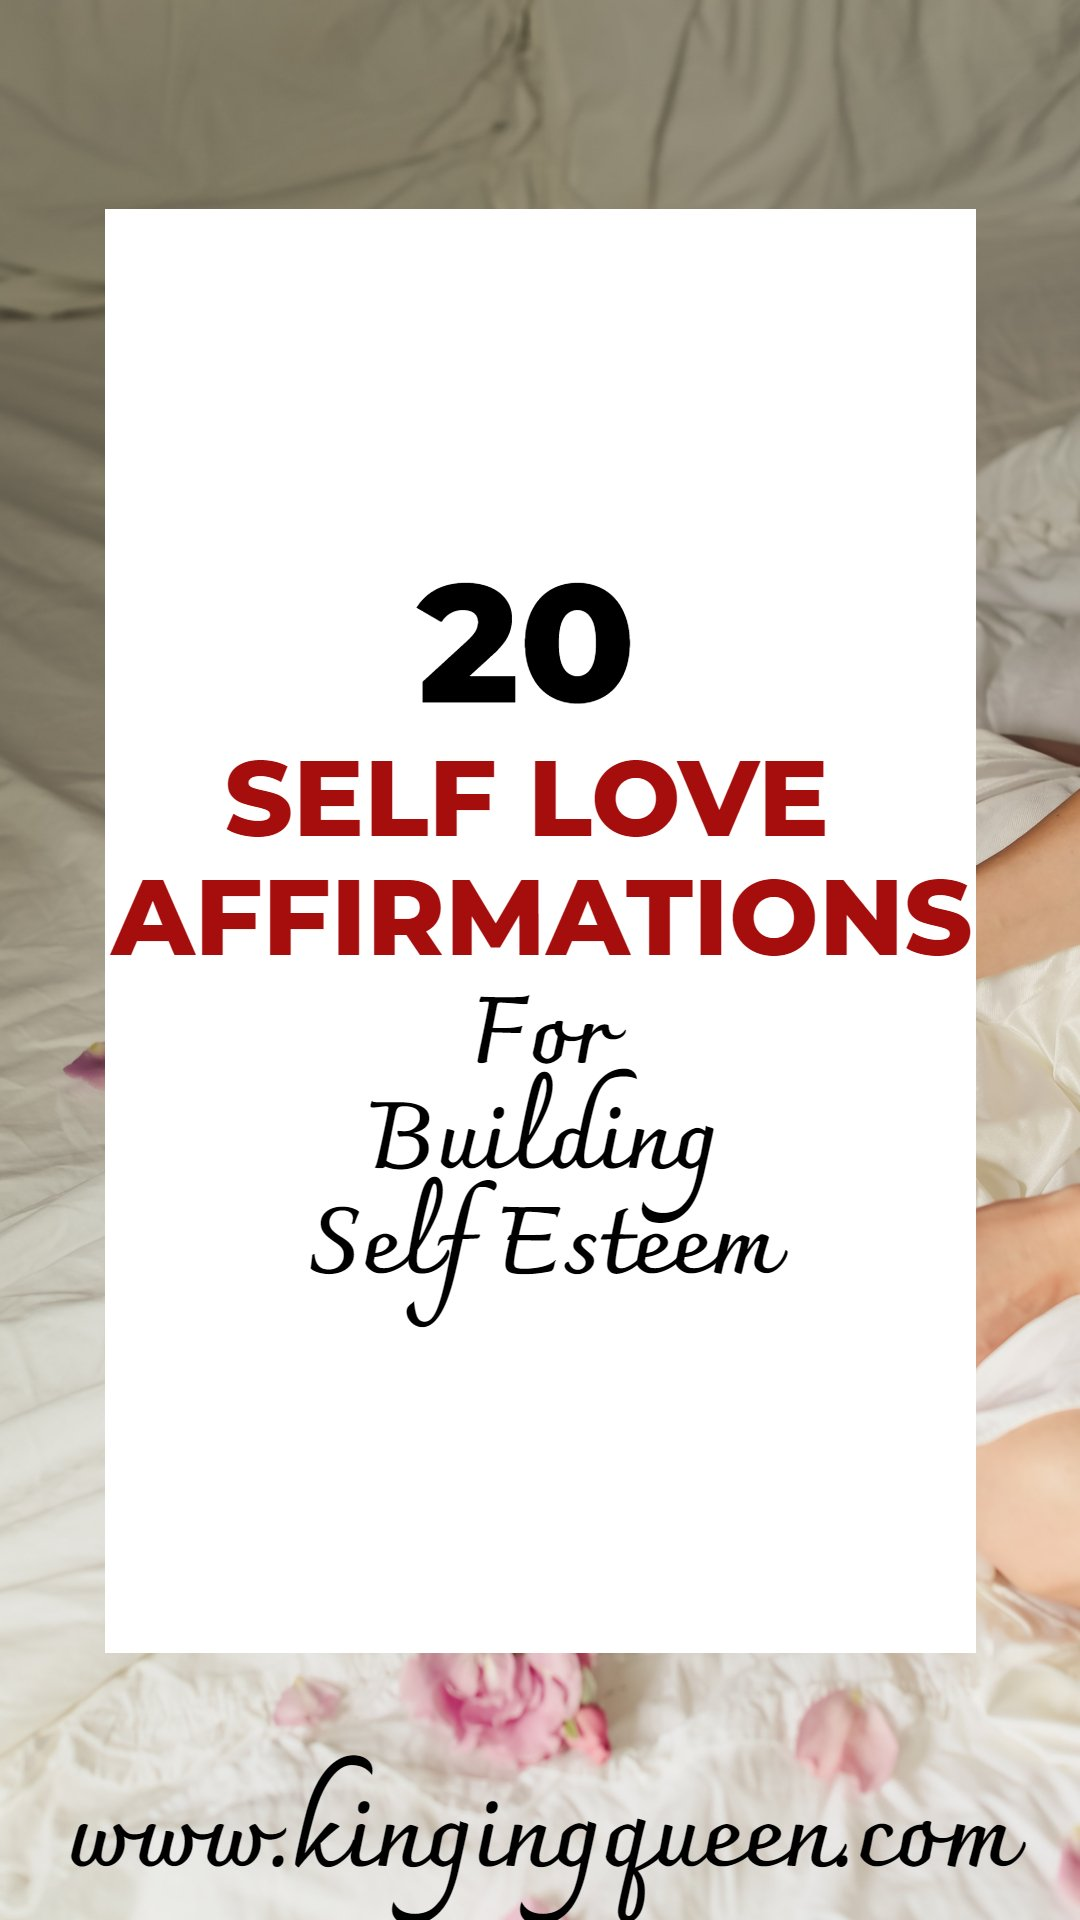 graphic showing self love affirmations for building self esteem